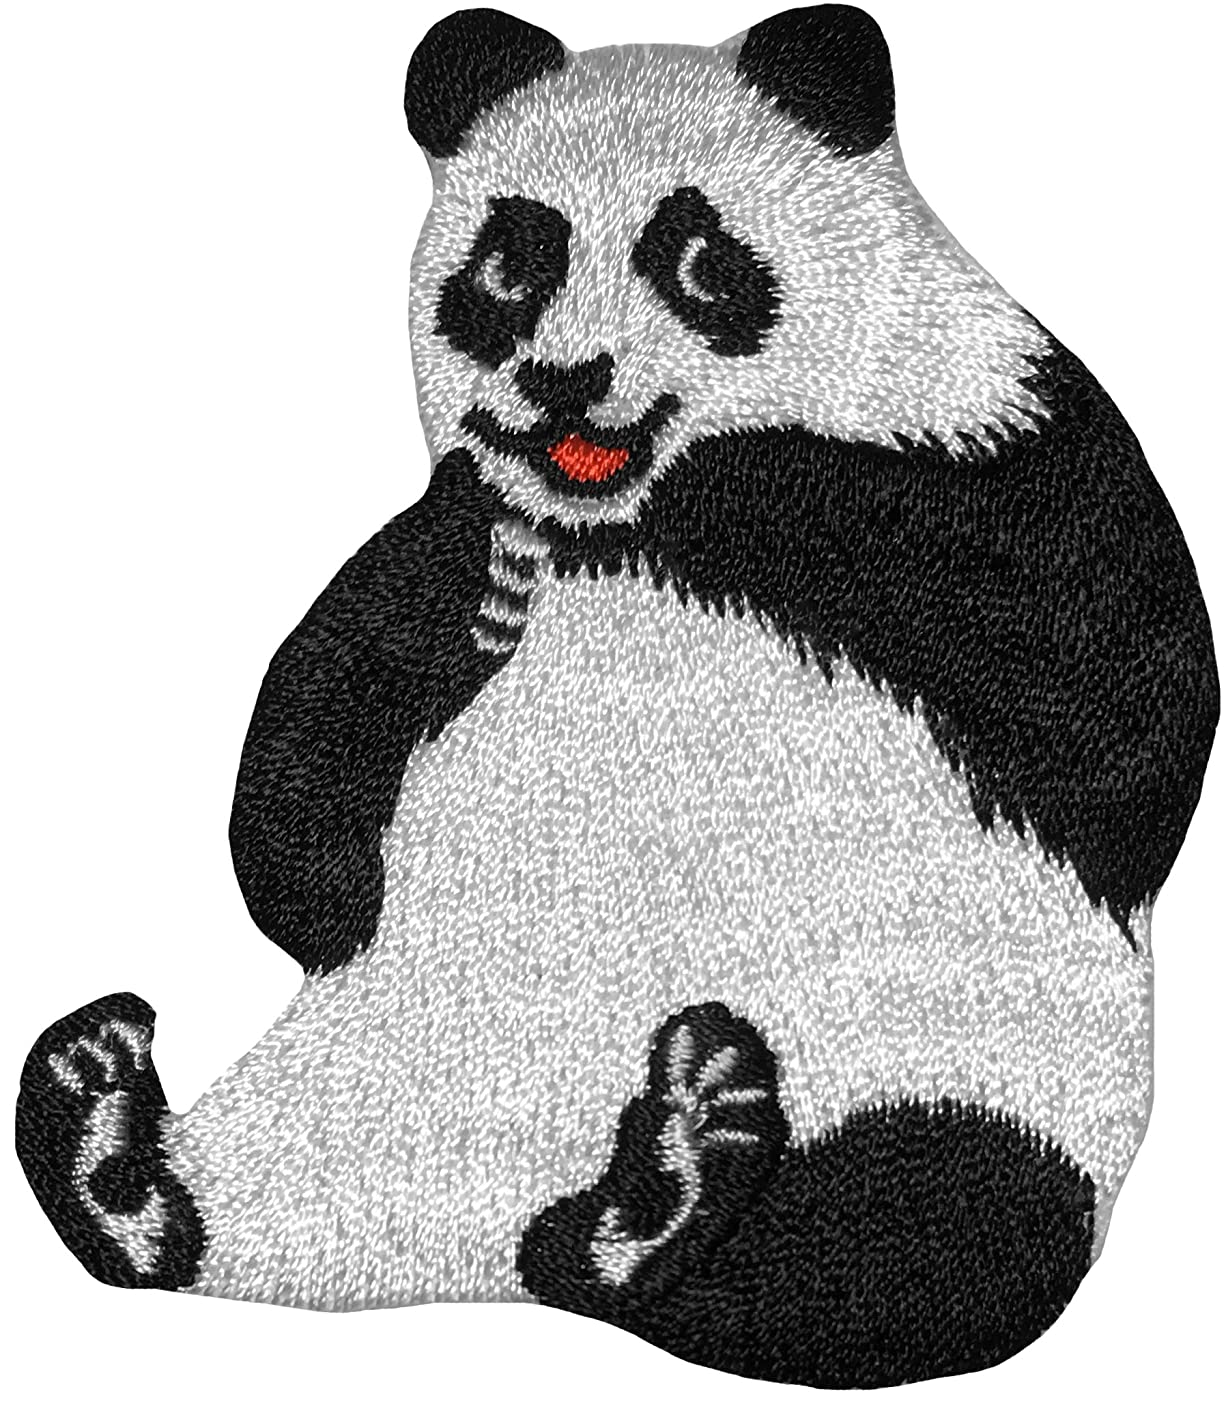 Papapatch Cute Panda Bear Cartoon Animal Wild Embroidered Applique DIY Sign Badge Sew on Iron on Patch (IRON-PANDA)